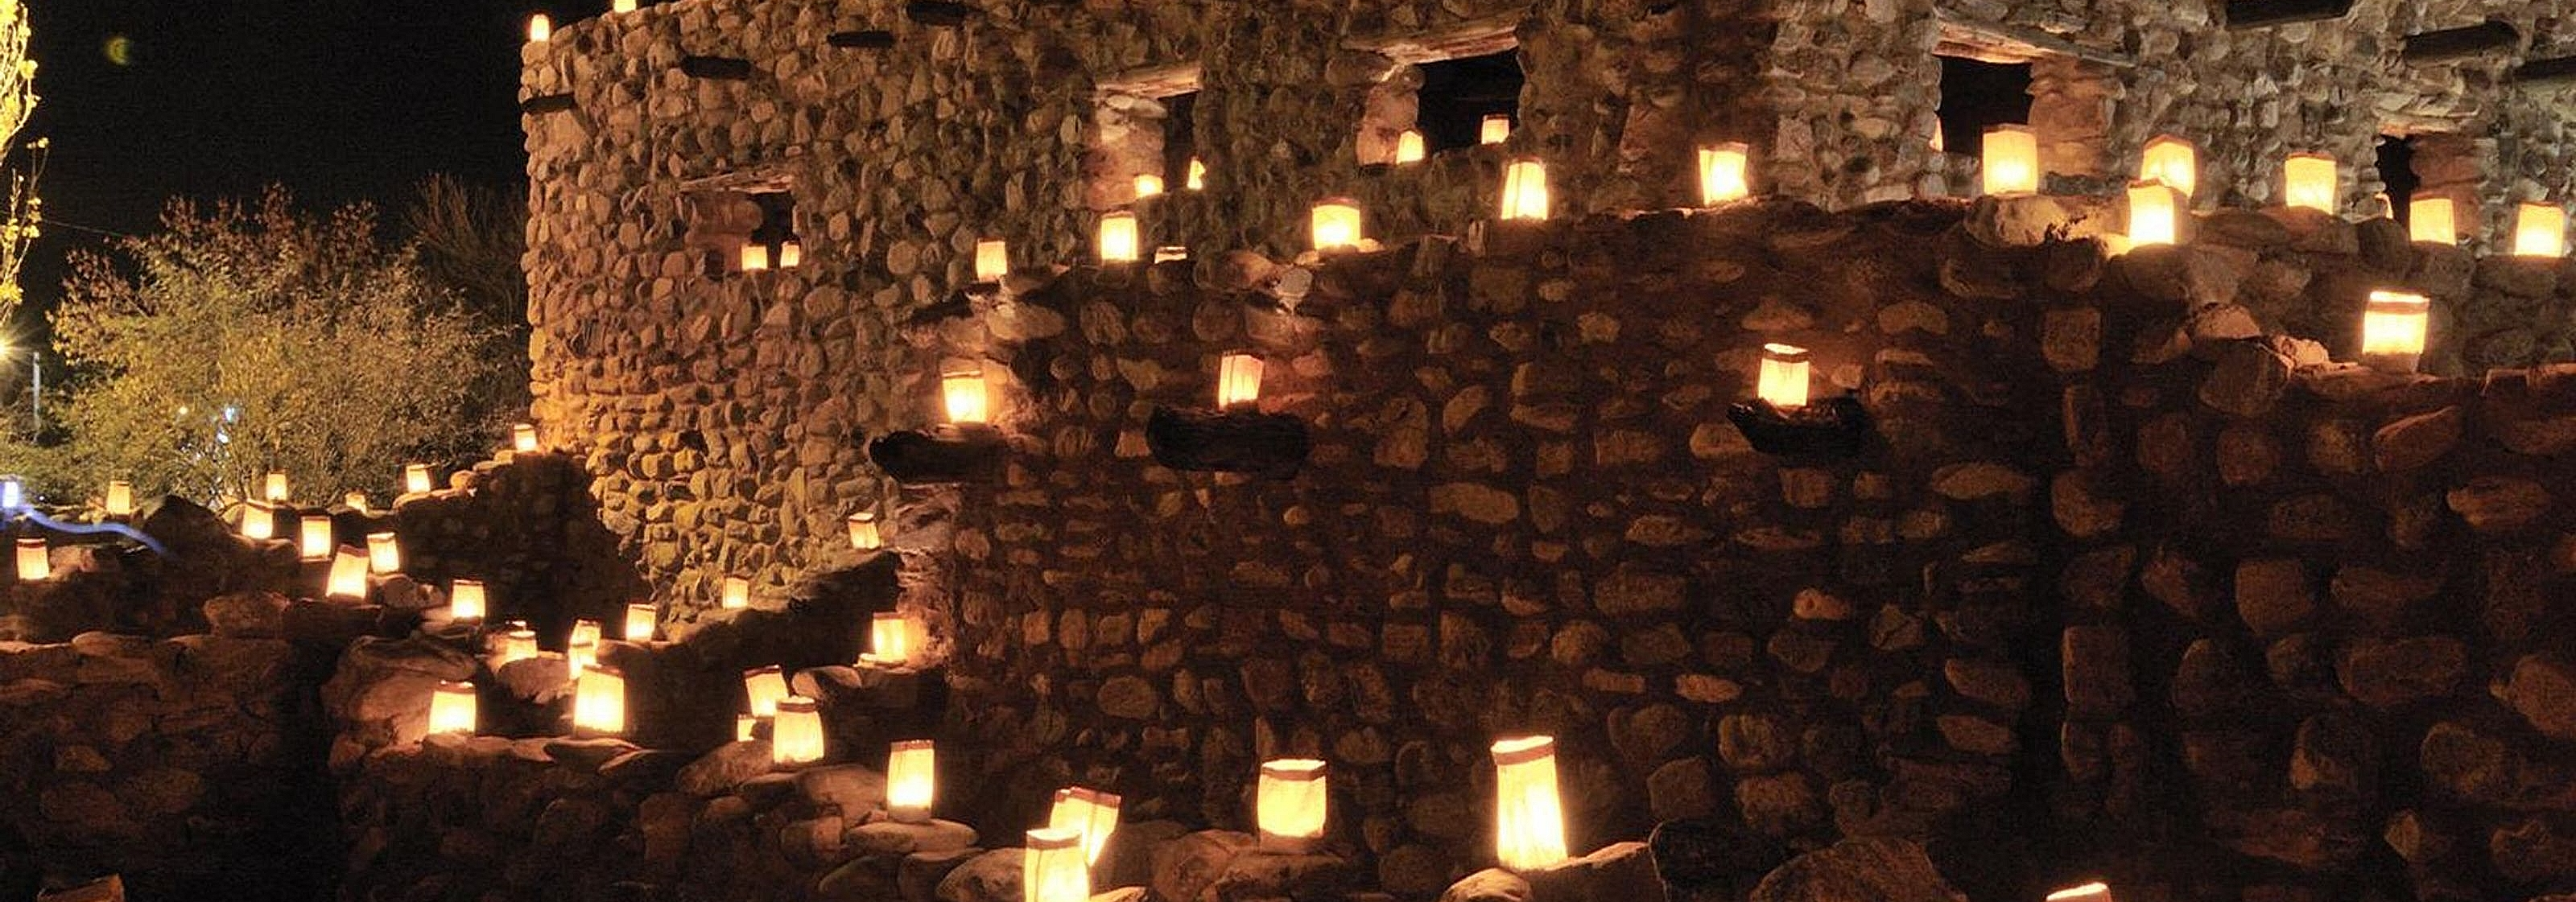 Luminarias at Besh ba Gowah Salado ruins in Globe, Arizona